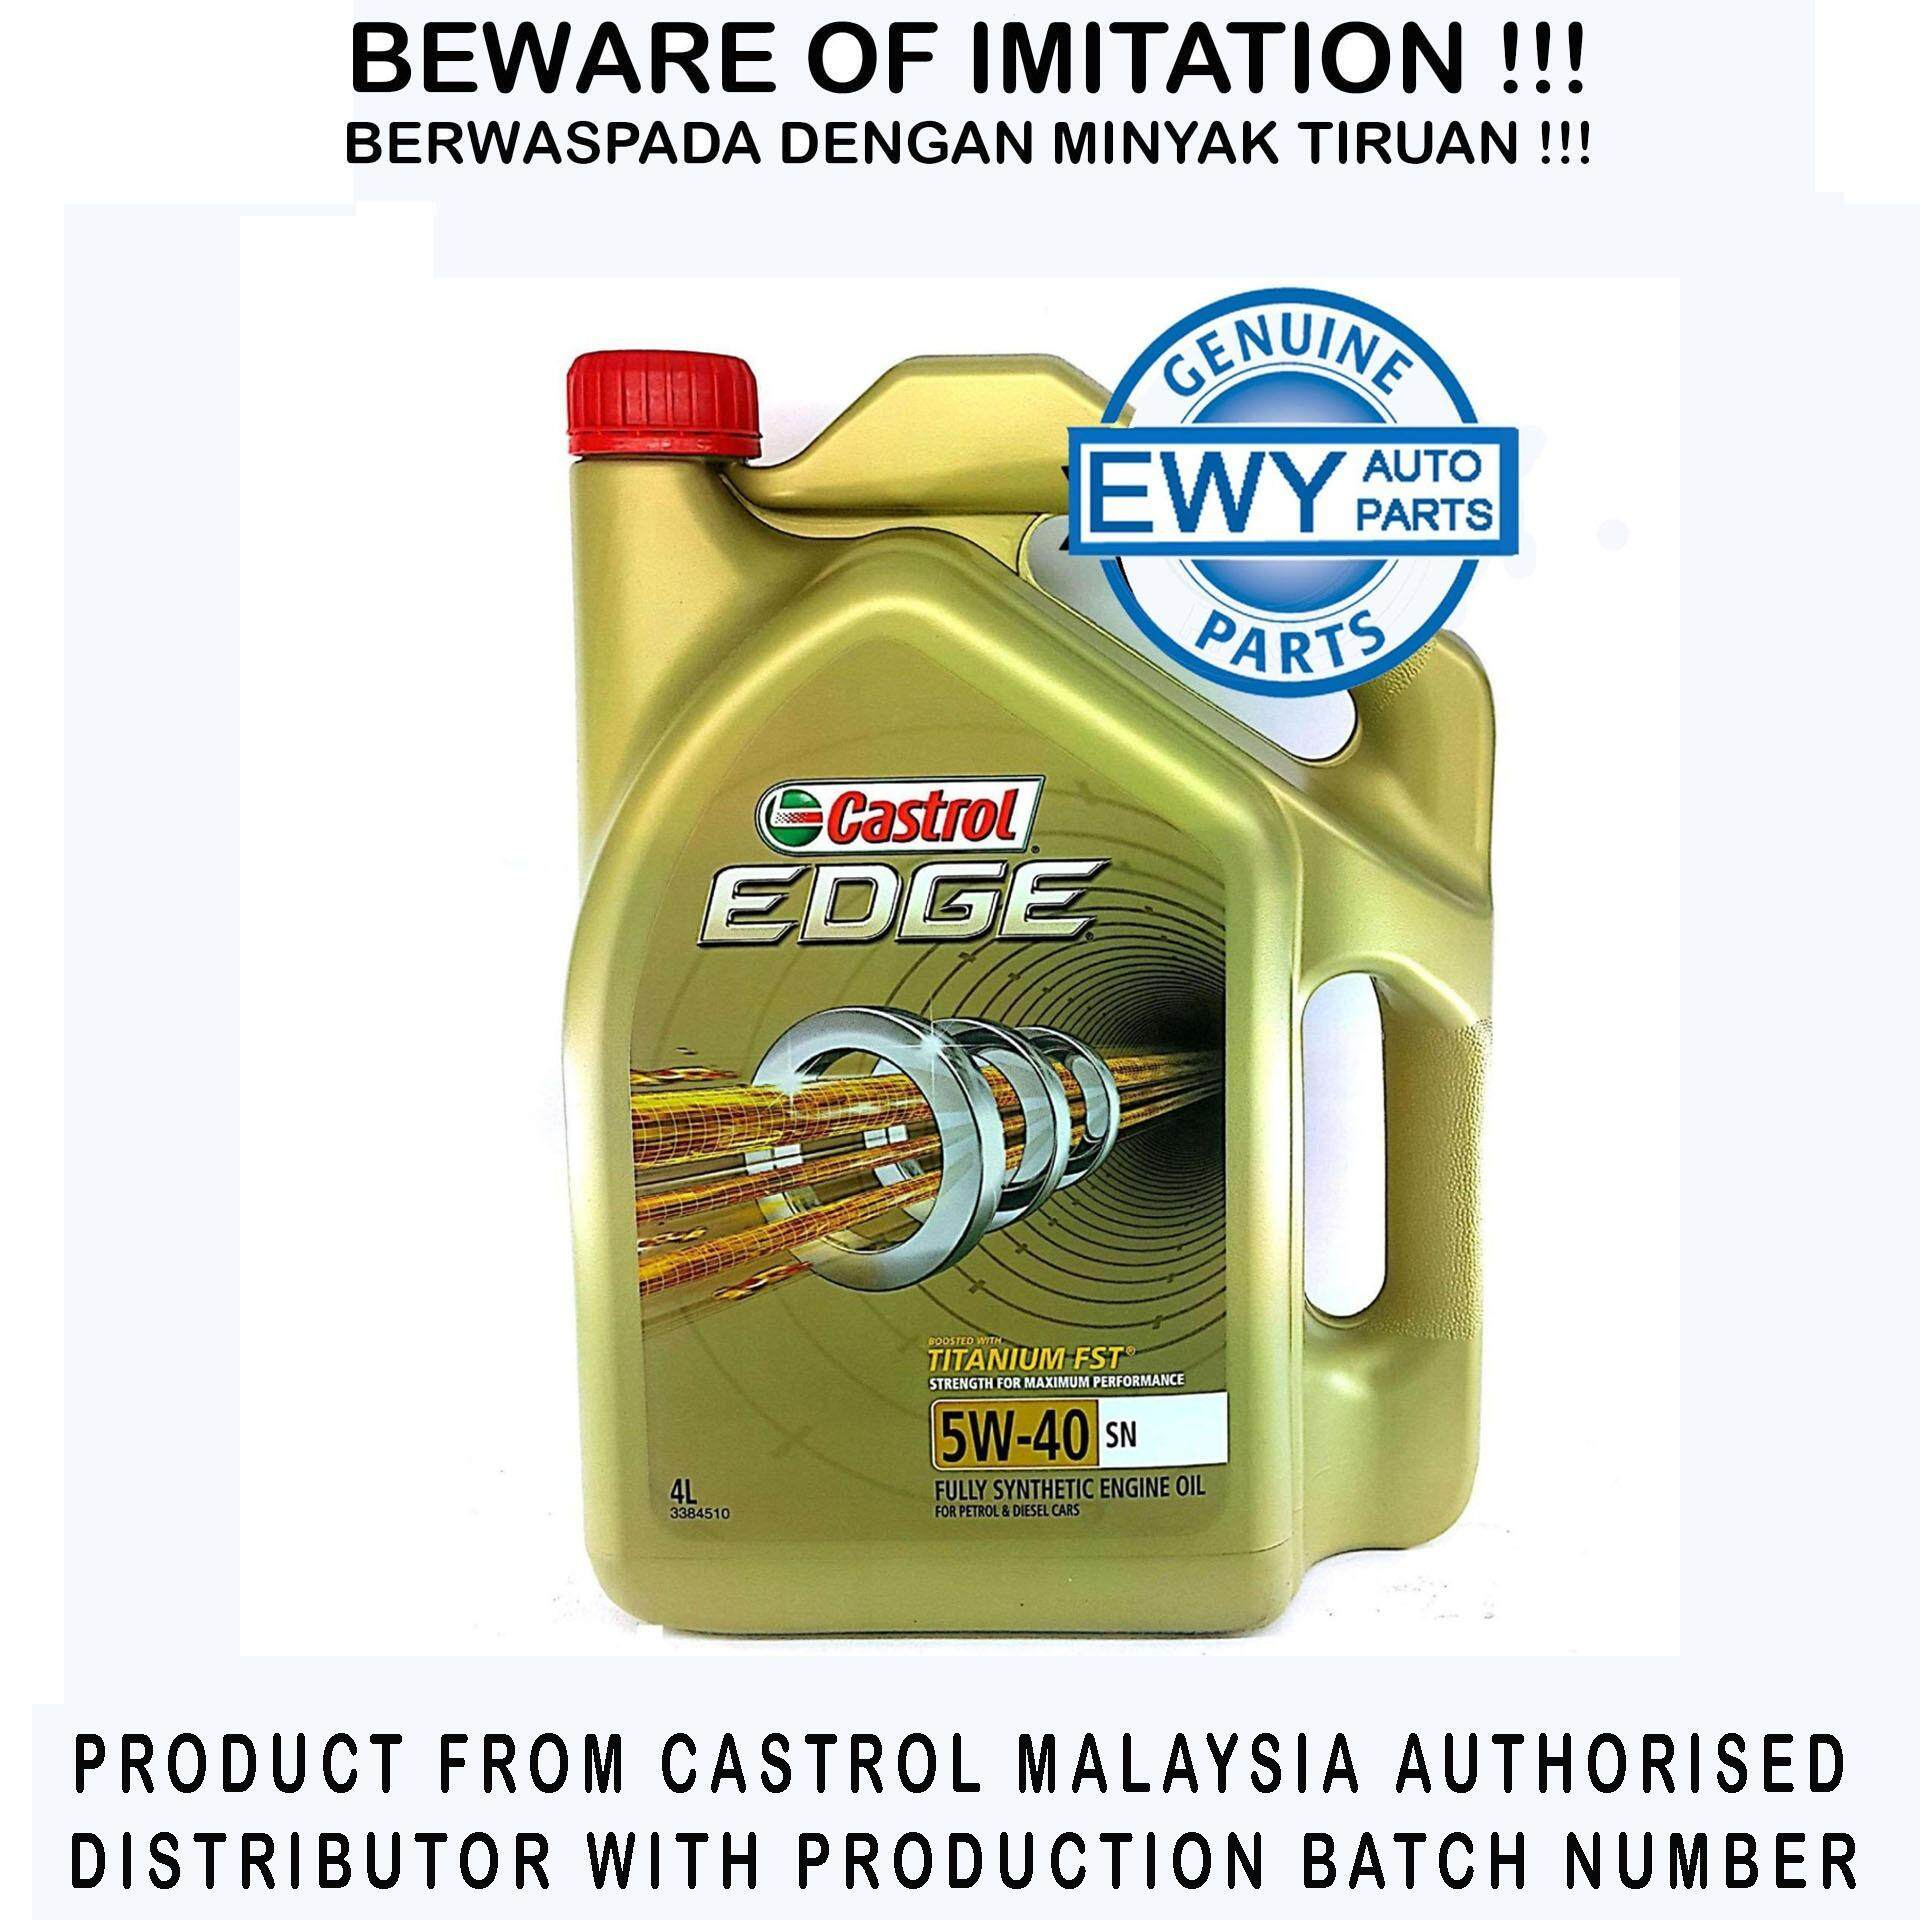 Castrol Engine Oil For The Best Price In Malaysia Magnatec Stop Start 5w 30 Edge Fully Synthetic 40 4l